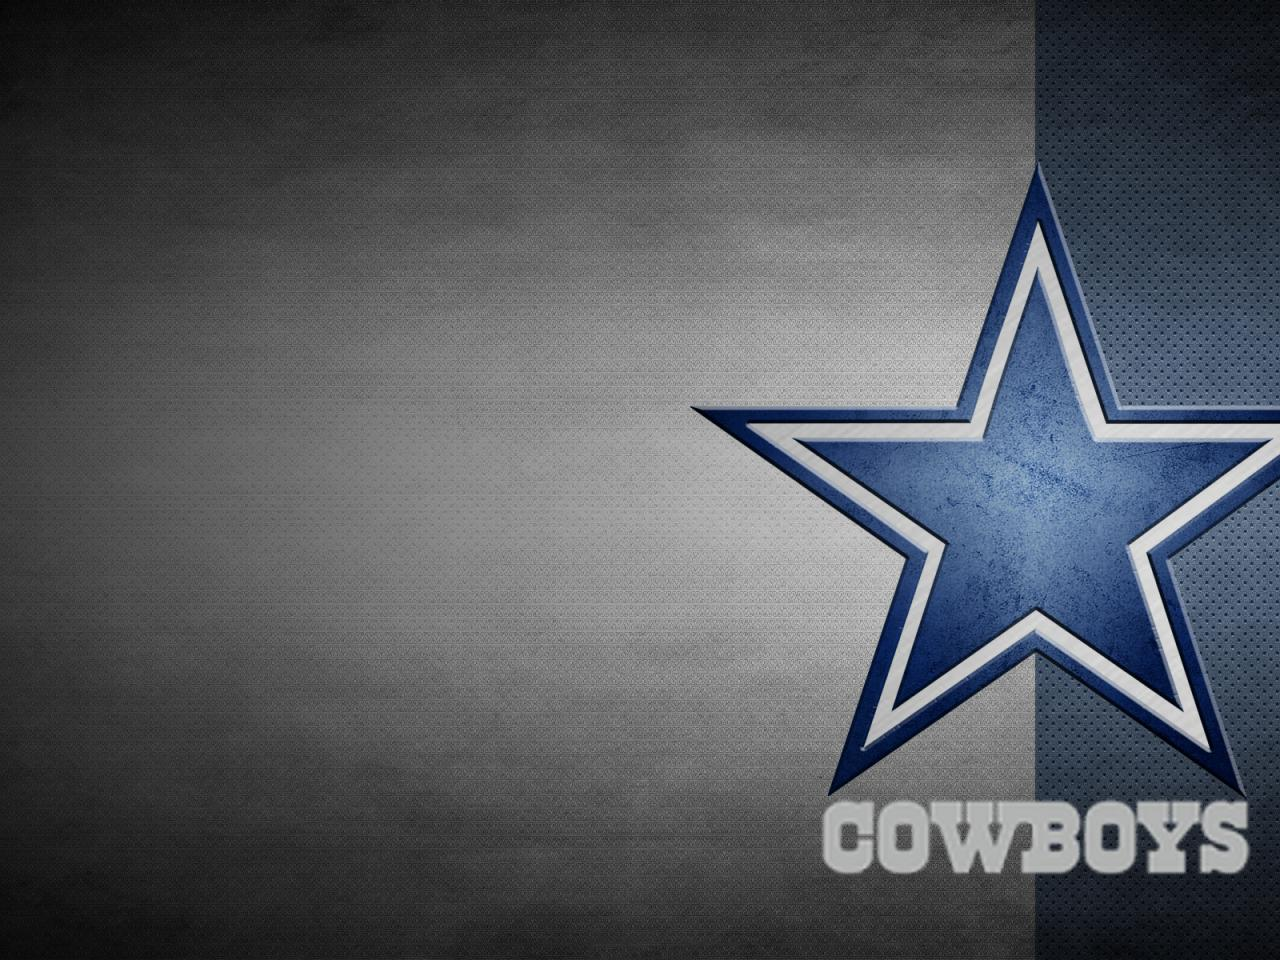 Beautiful Girl Hd Wallpaper Pictures Download Dallas Cowboys Free Wallpaper Download With Logo Hd